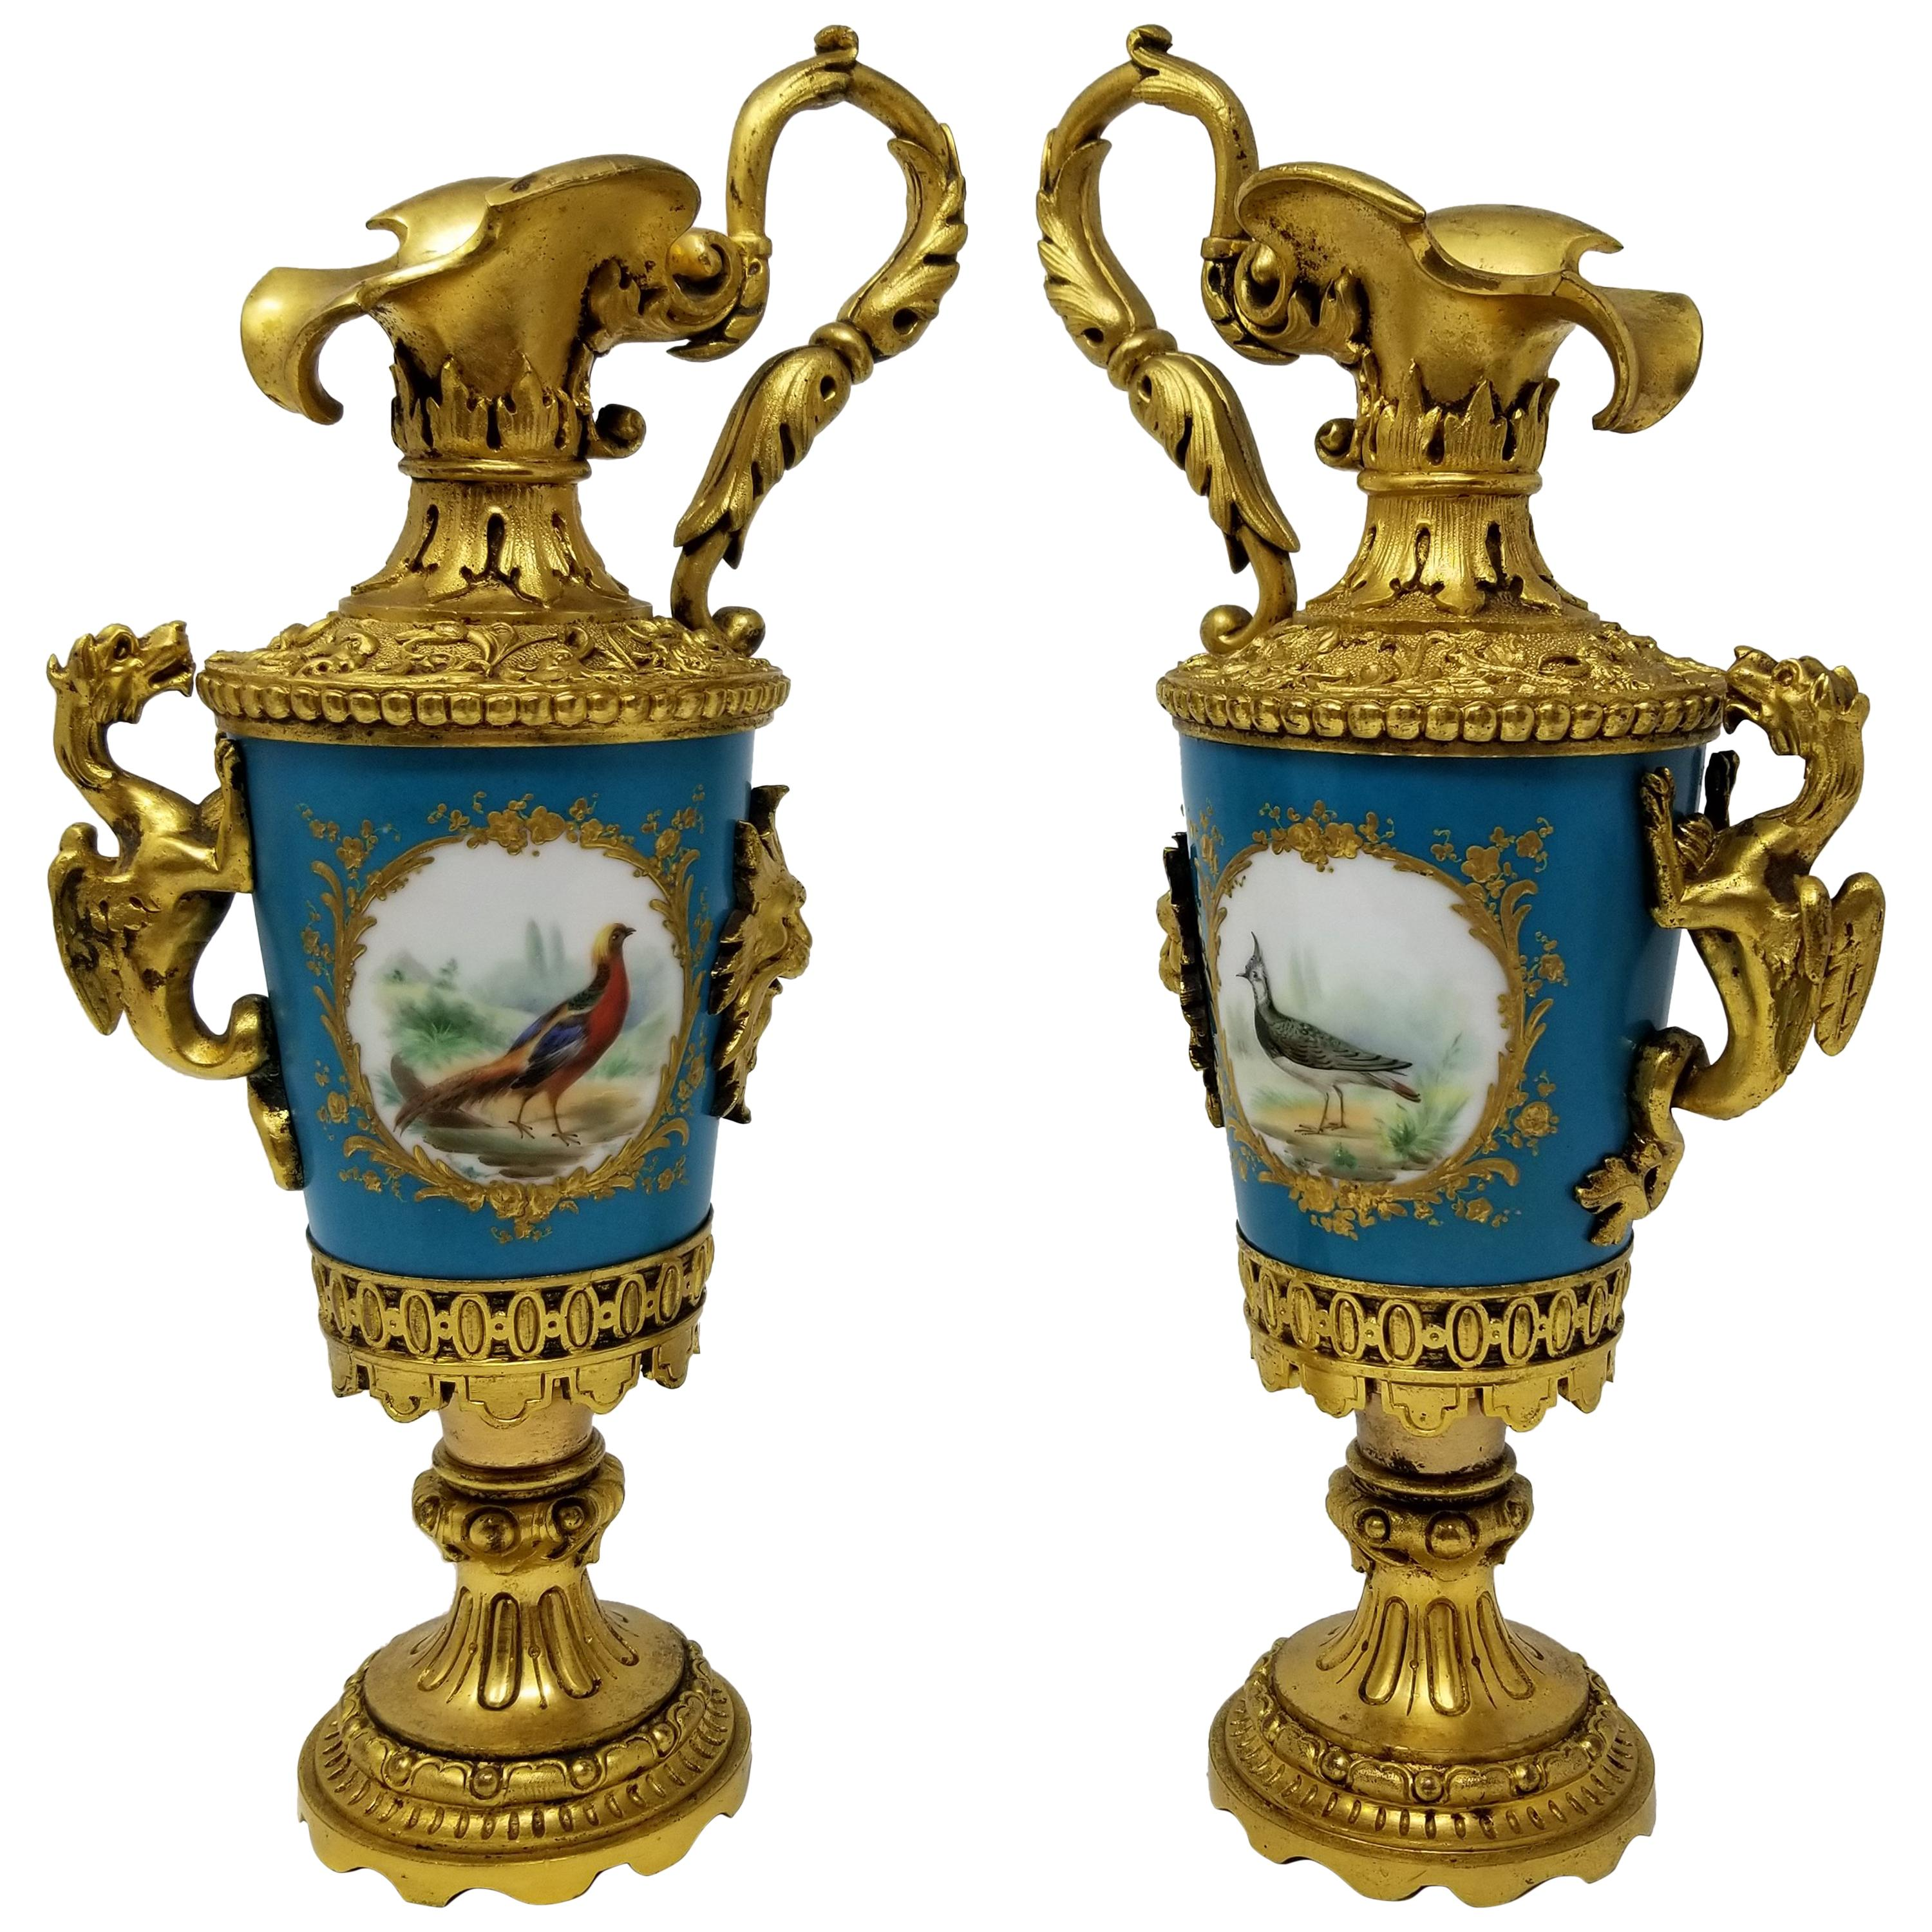 Pair of French Sèvres Porcelain Ormolu Mounted Ewers with Birds/Flowers/Dragons